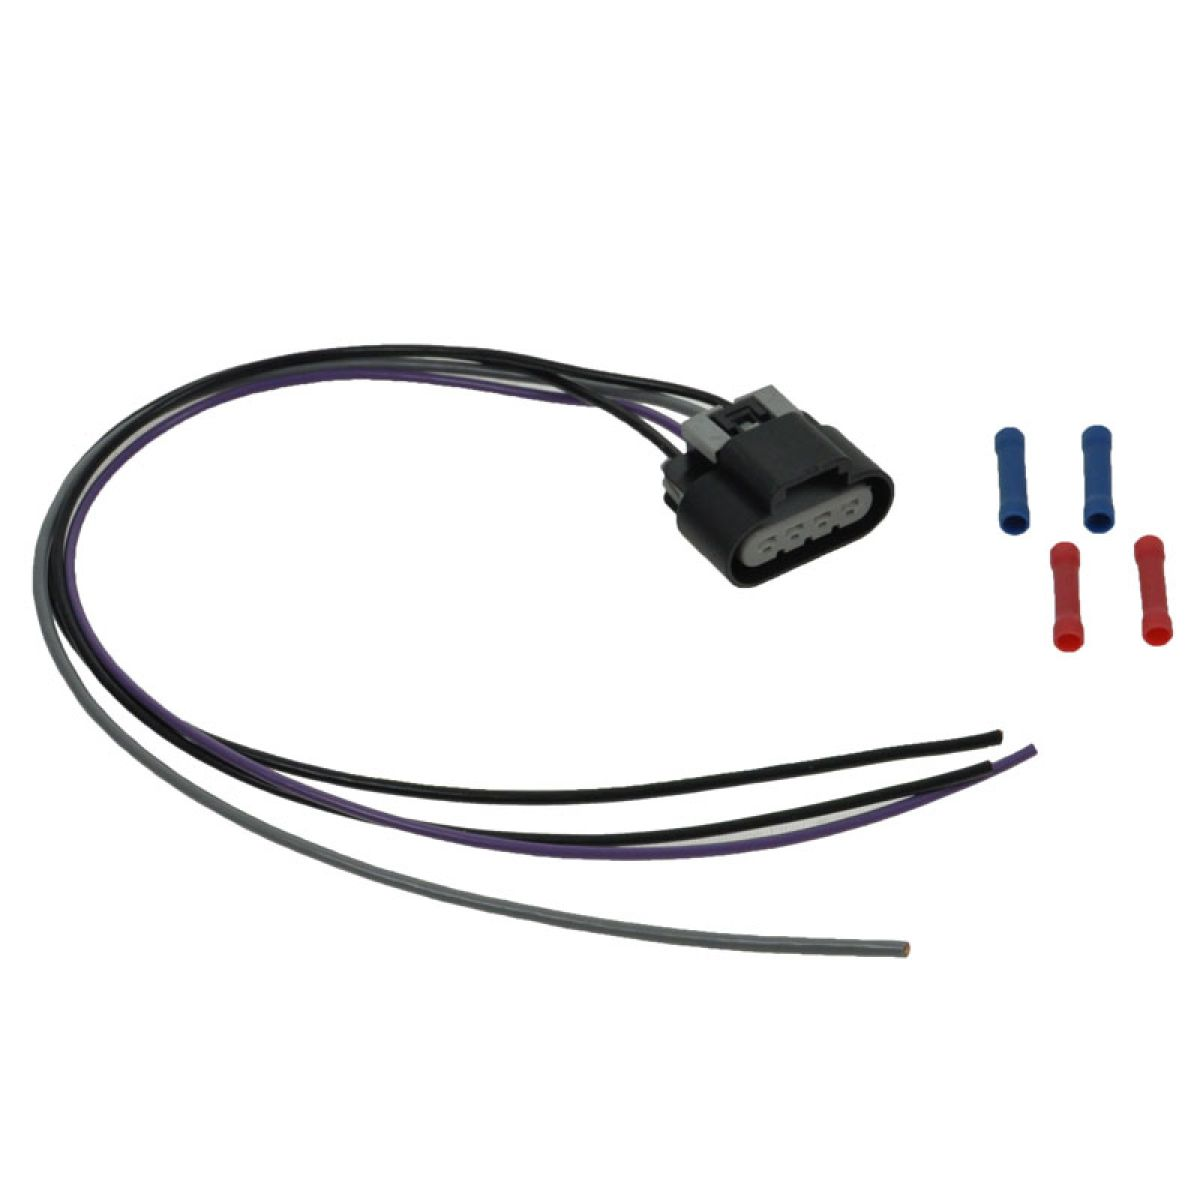 hight resolution of fuel pump wiring harness with oval connector 4 wire pigtail for gm car pickup